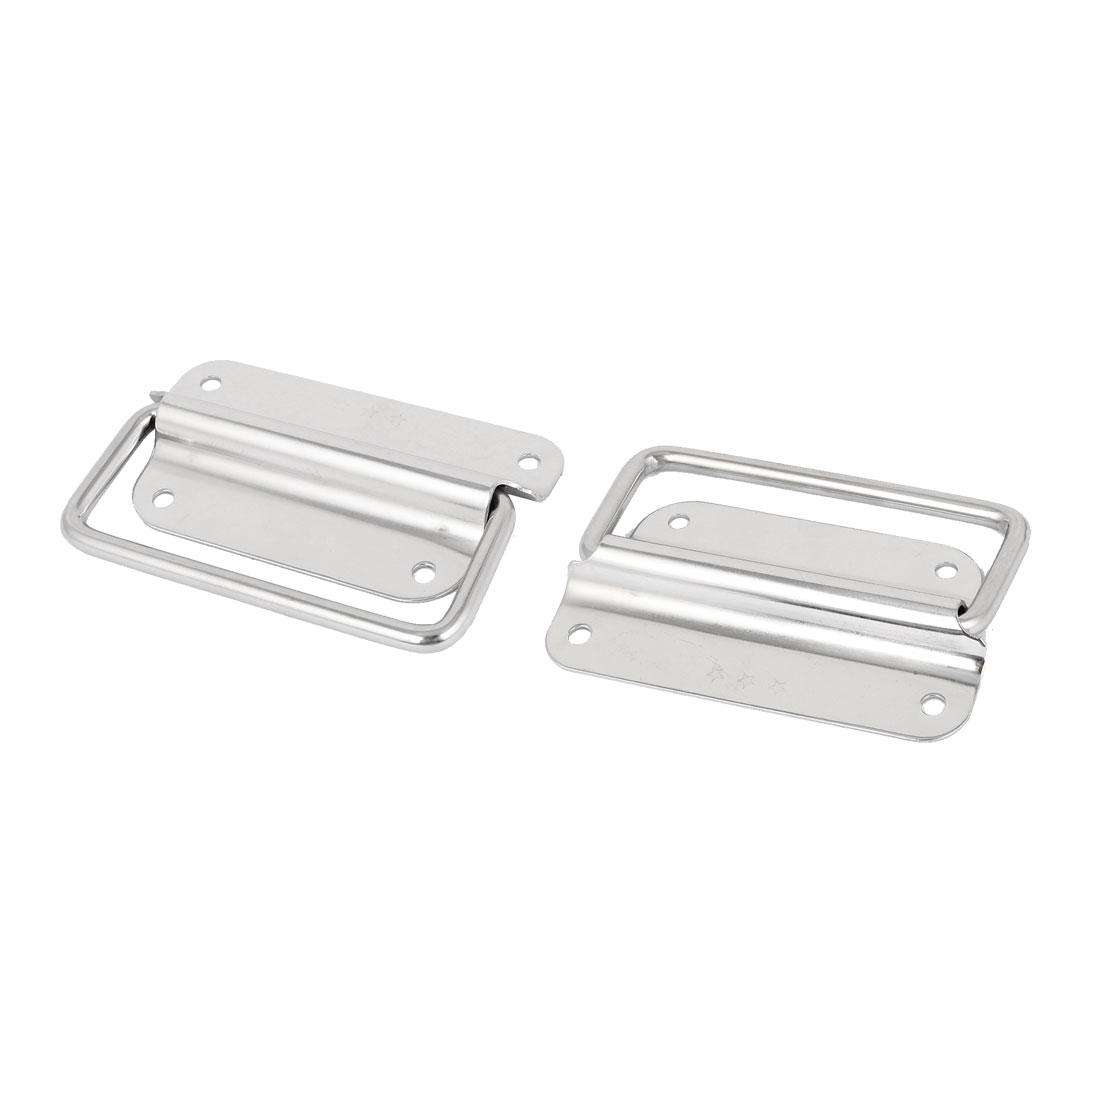 """Toolbox Stainless Steel 90-Degree Puller Chest Handle Silver Tone 4"""" Length 2pcs"""